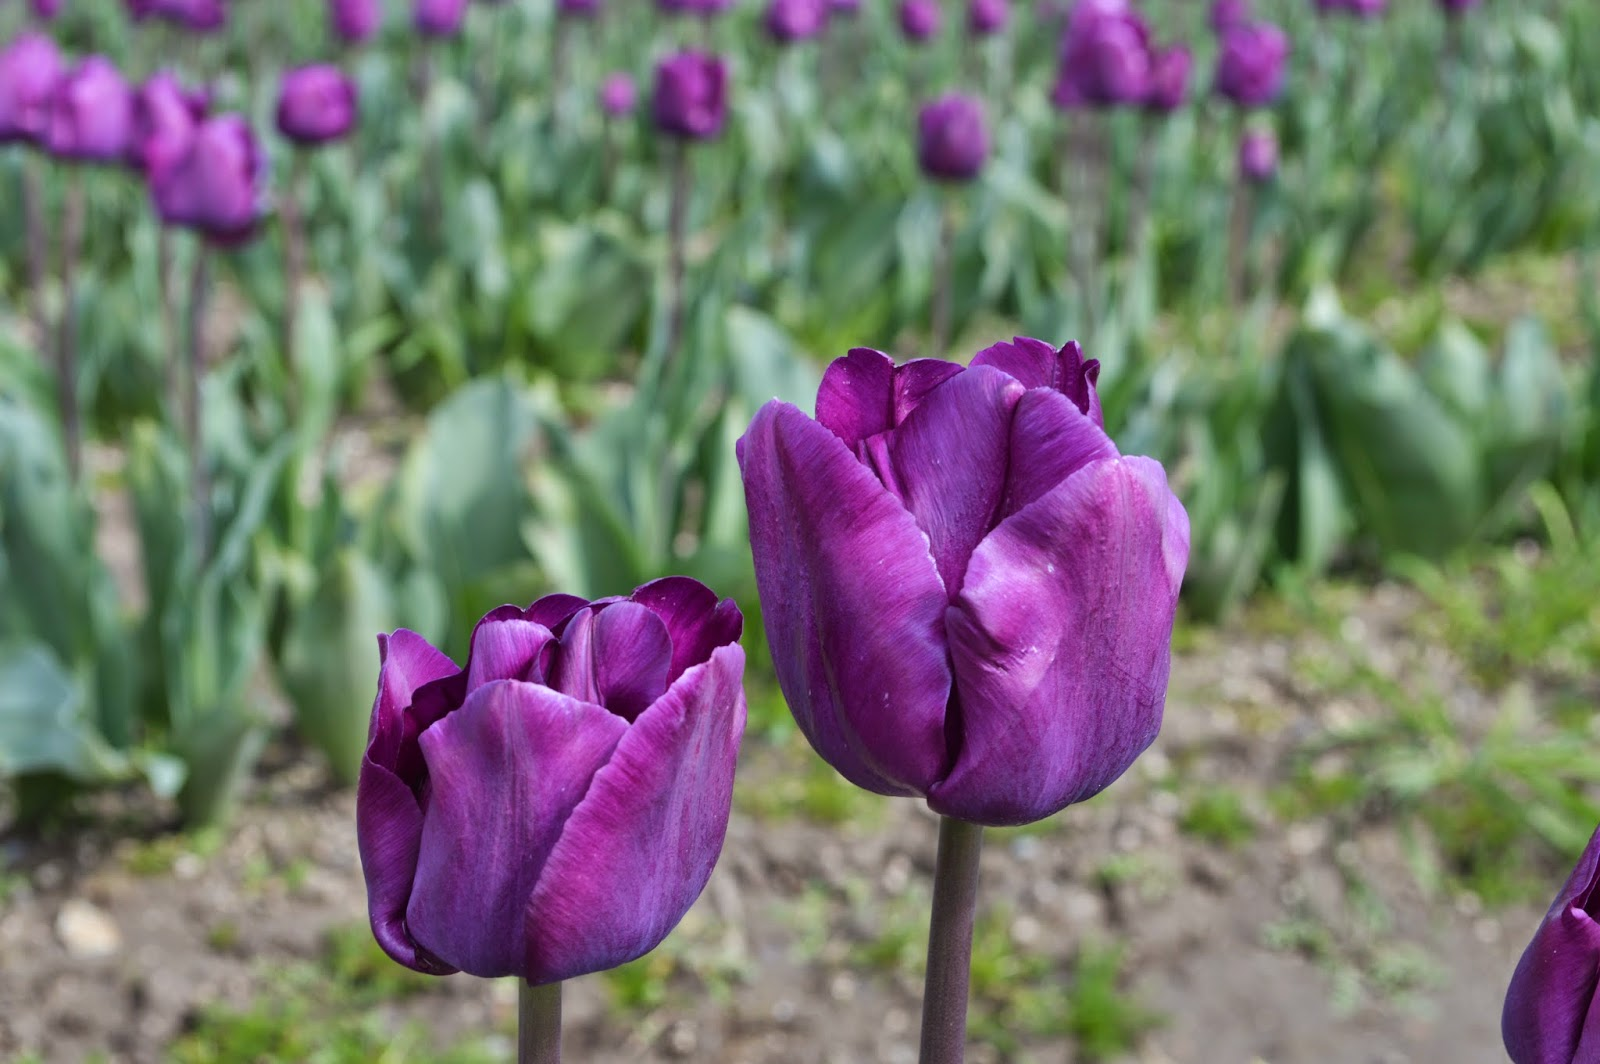 Skagit valley tulips festival. Purple tulips